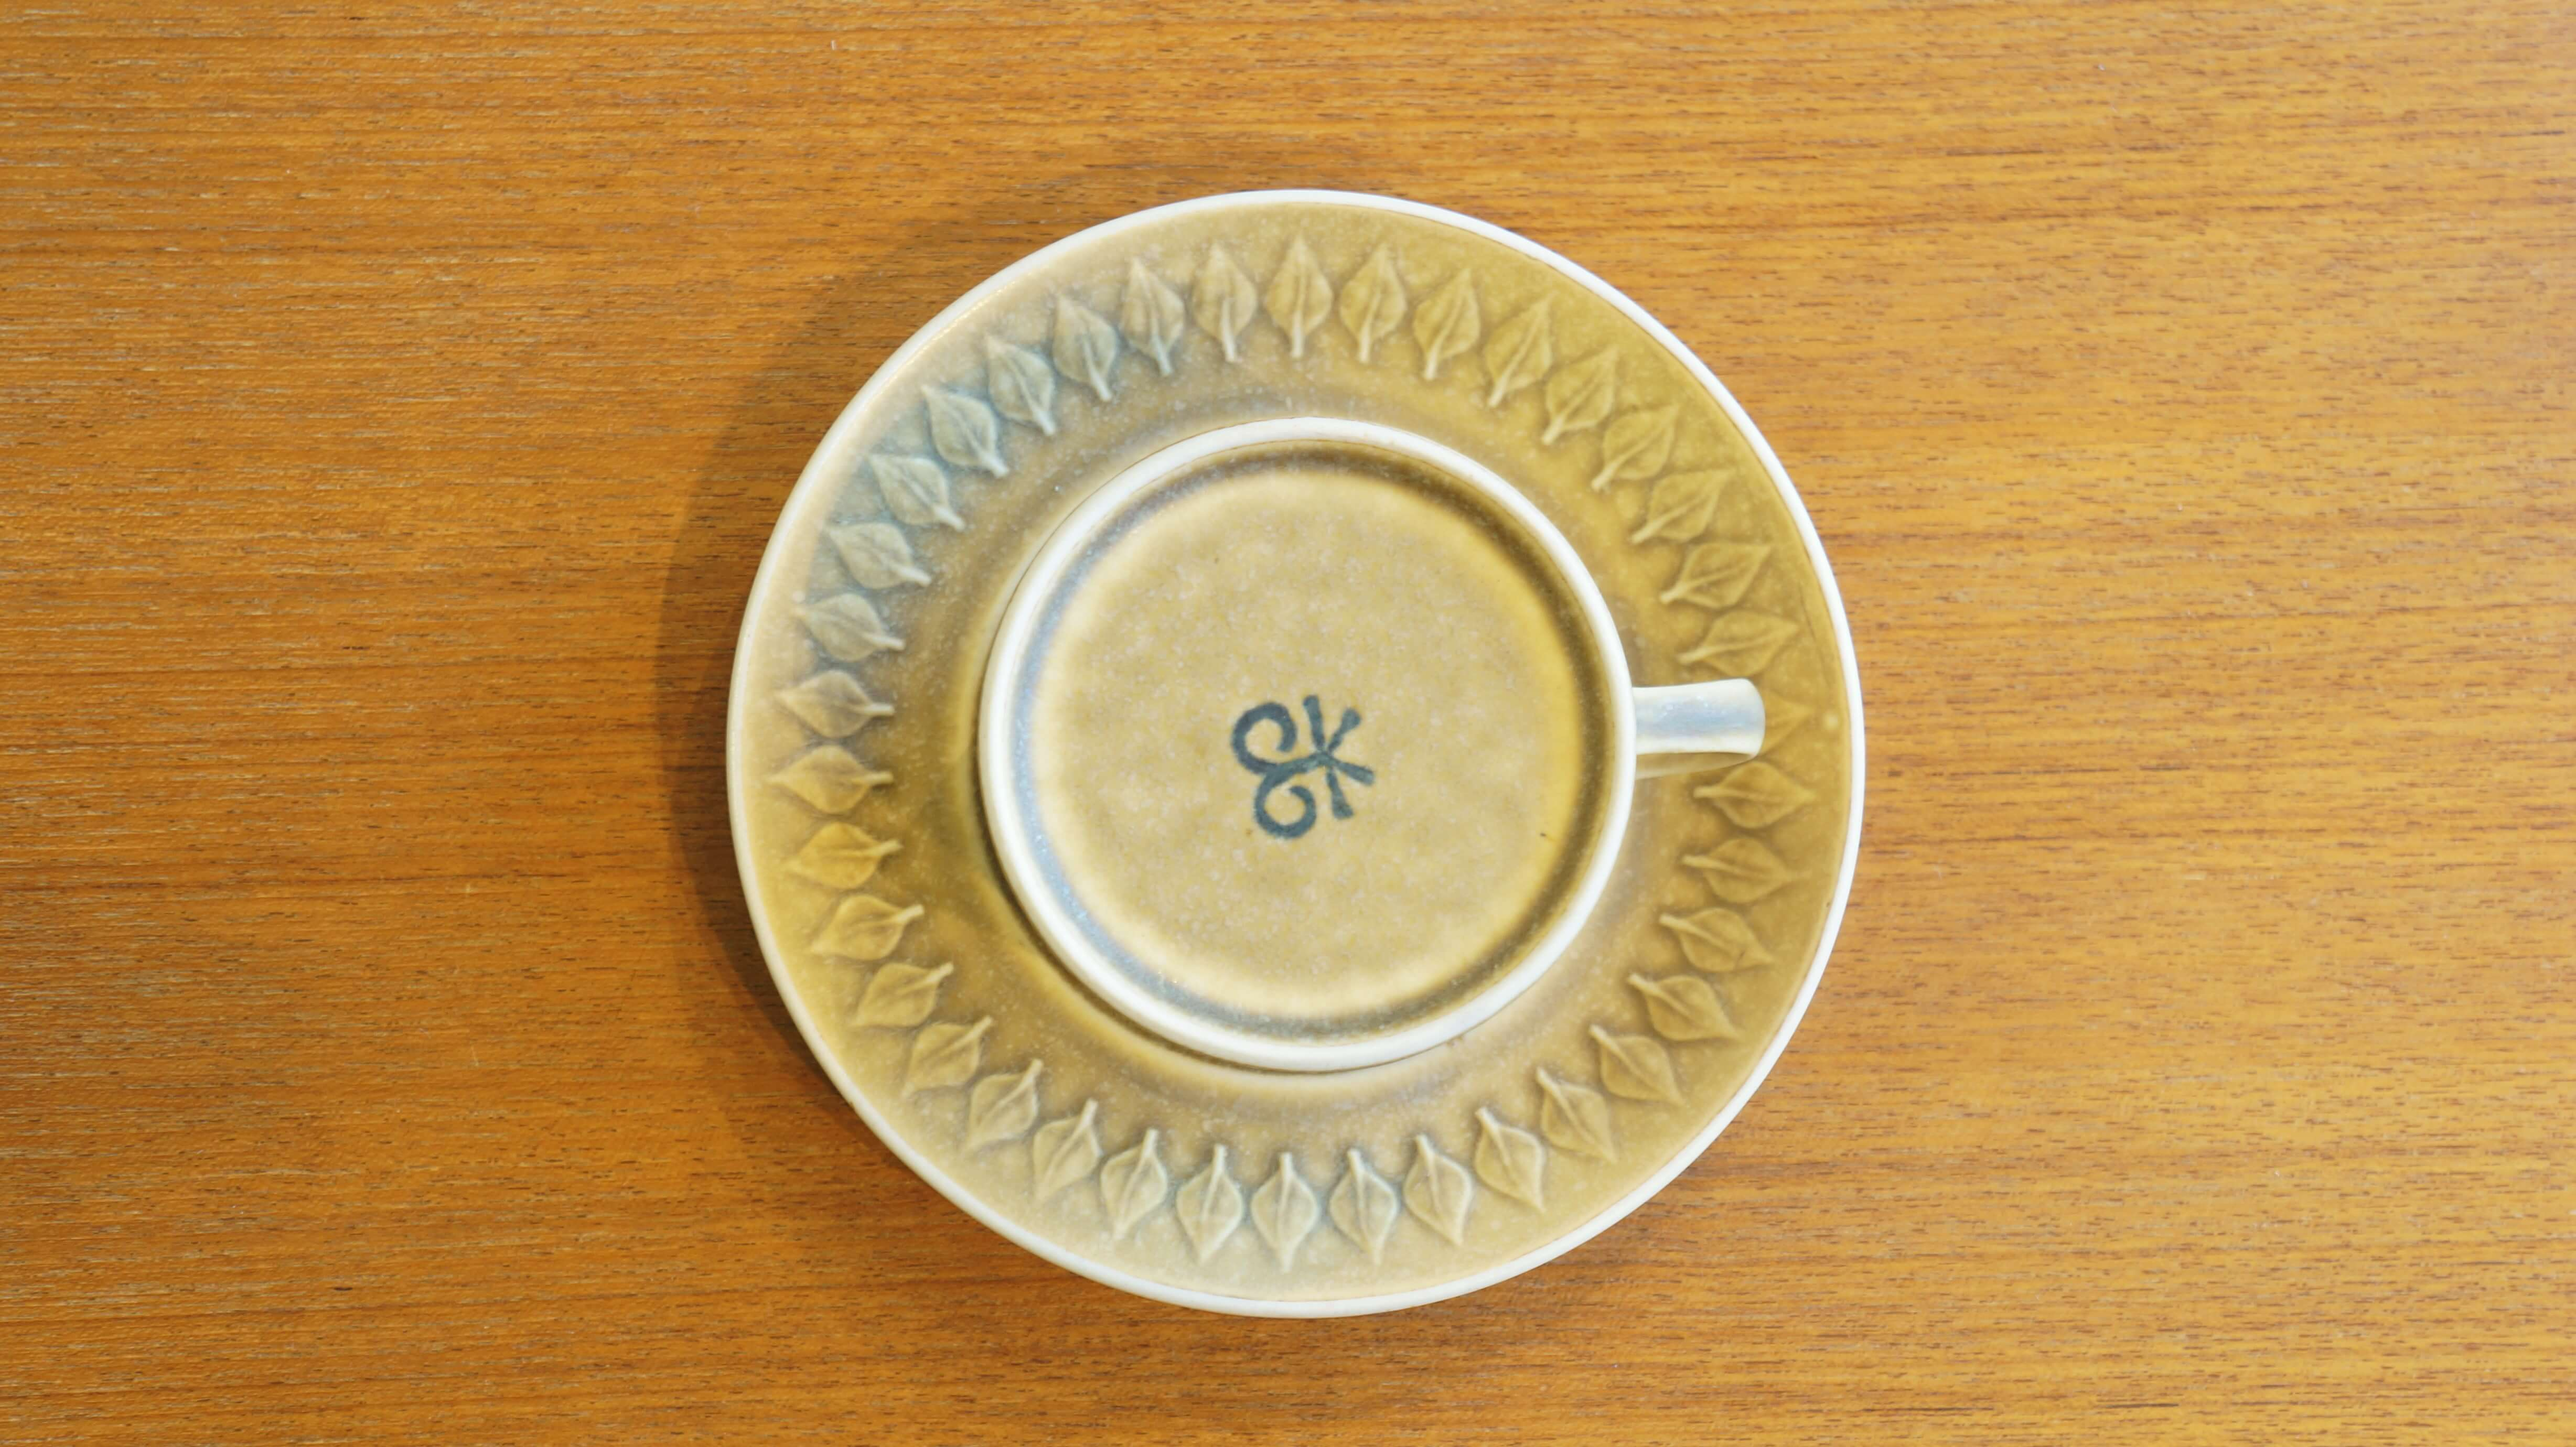 """Kronjyden """"relief"""" teacup&saucer/クロニーデン """"レリーフ"""" ティーカップ&ソーサー"""